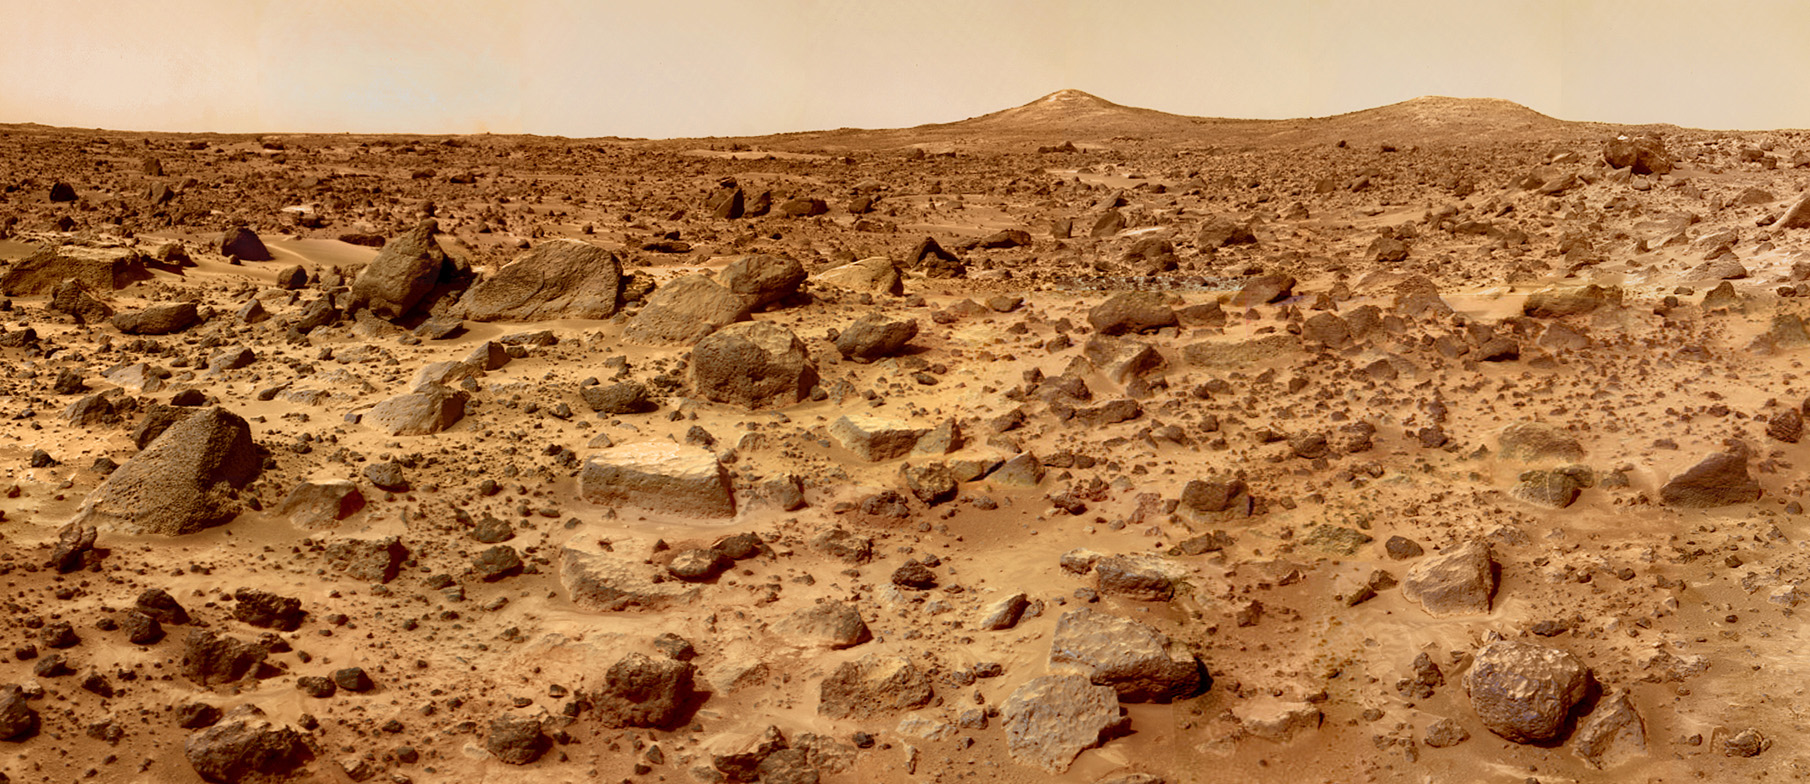 mars planet surface - photo #3